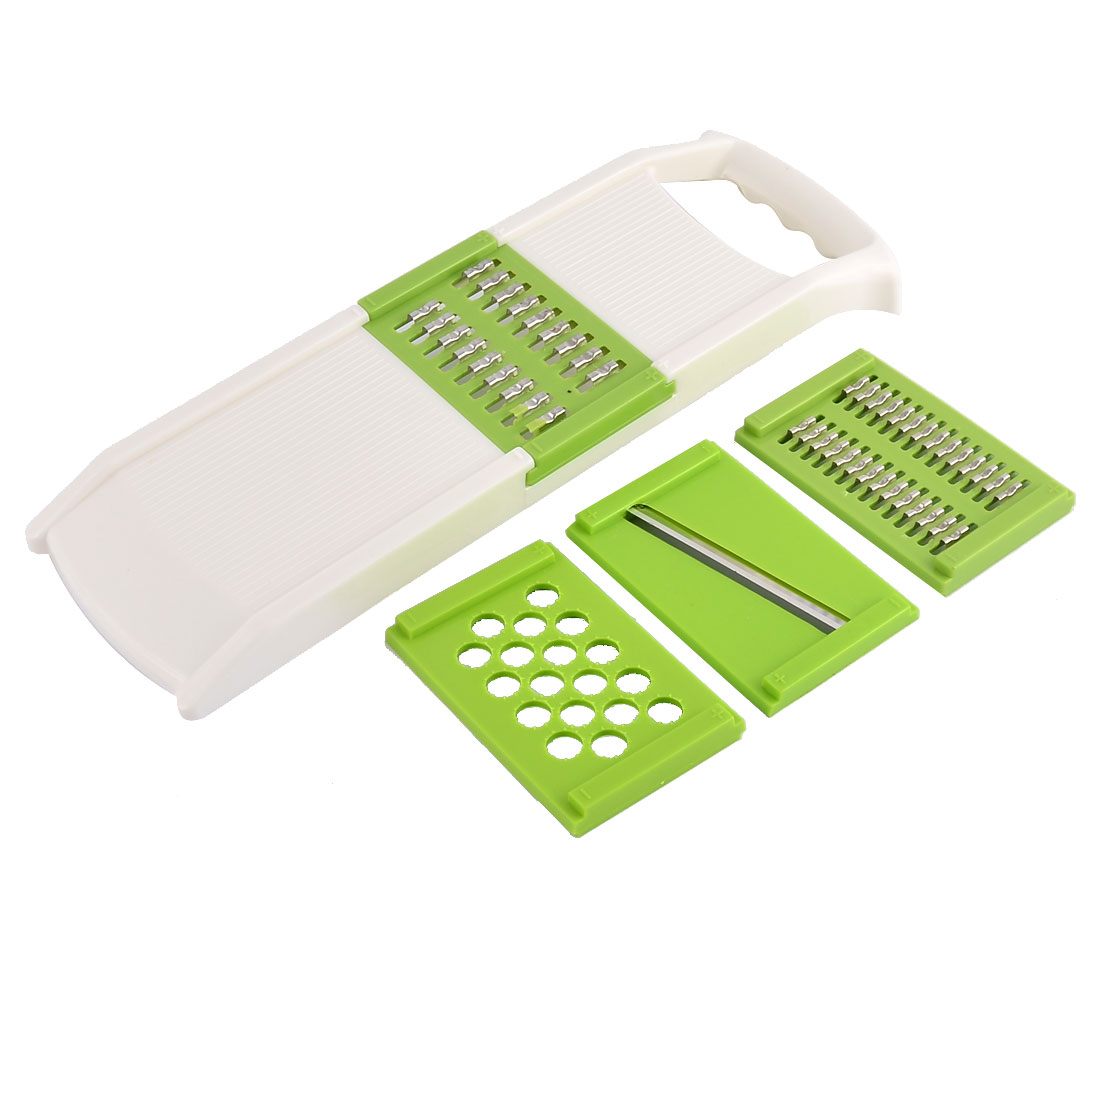 Kitchenware Cook Cucumber Carrot Potato Multi functional Grater Slicer Tool